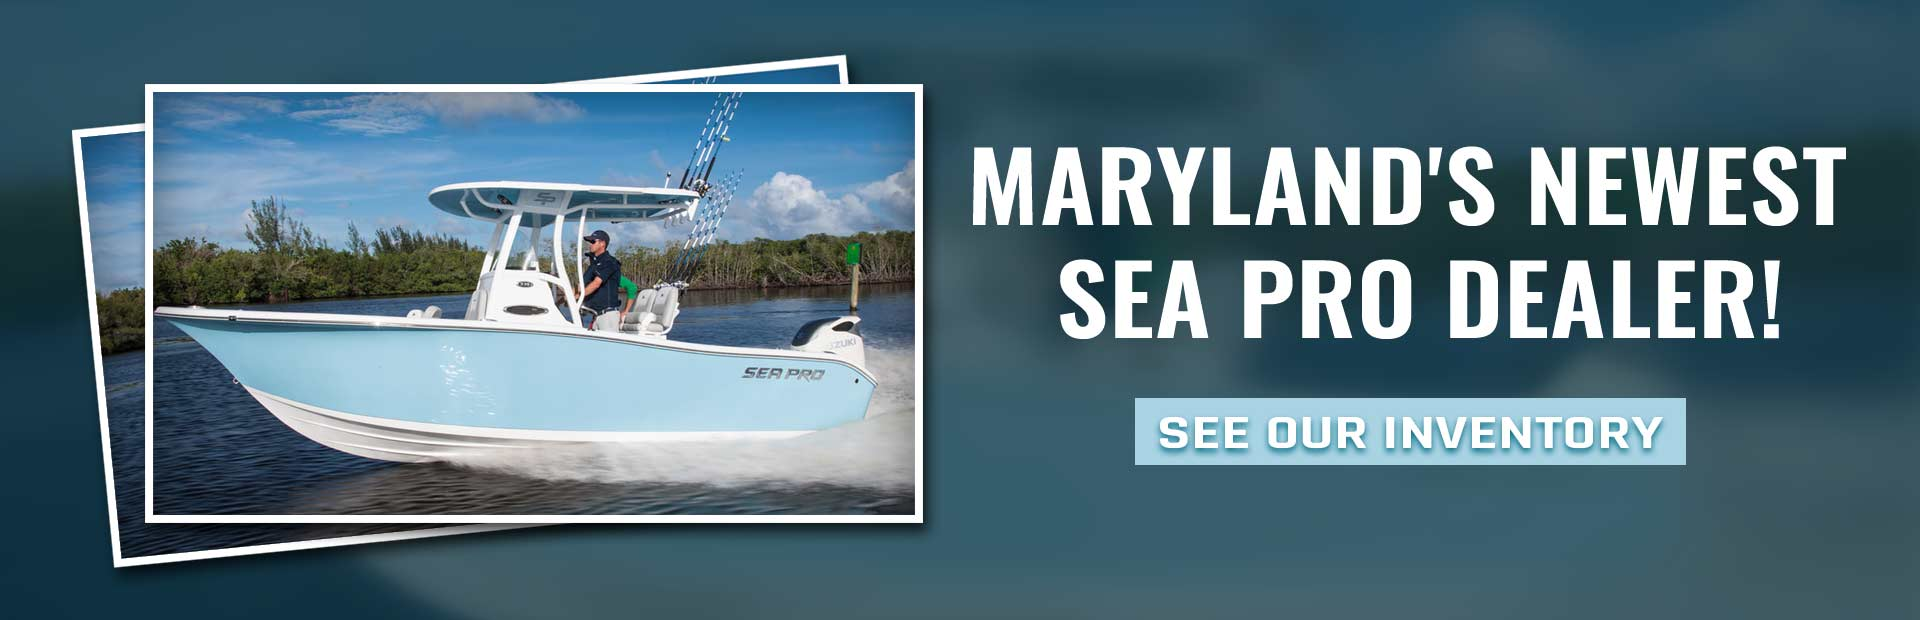 Maryland's newest sea pro dealer. Click here to see our new models!